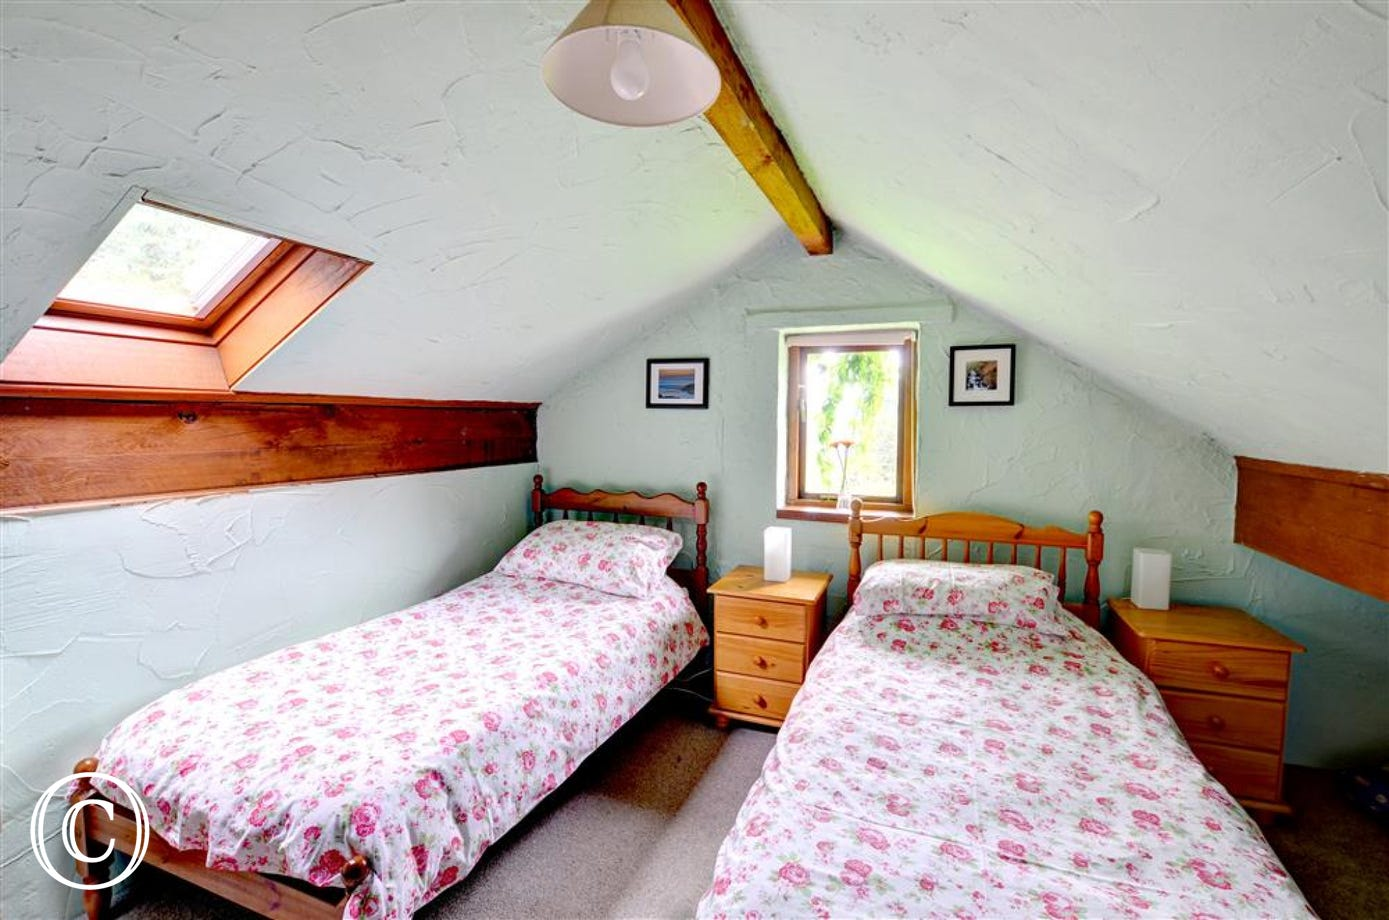 There are two similar twin bedrooms in the 'attic', with sloping ceilings